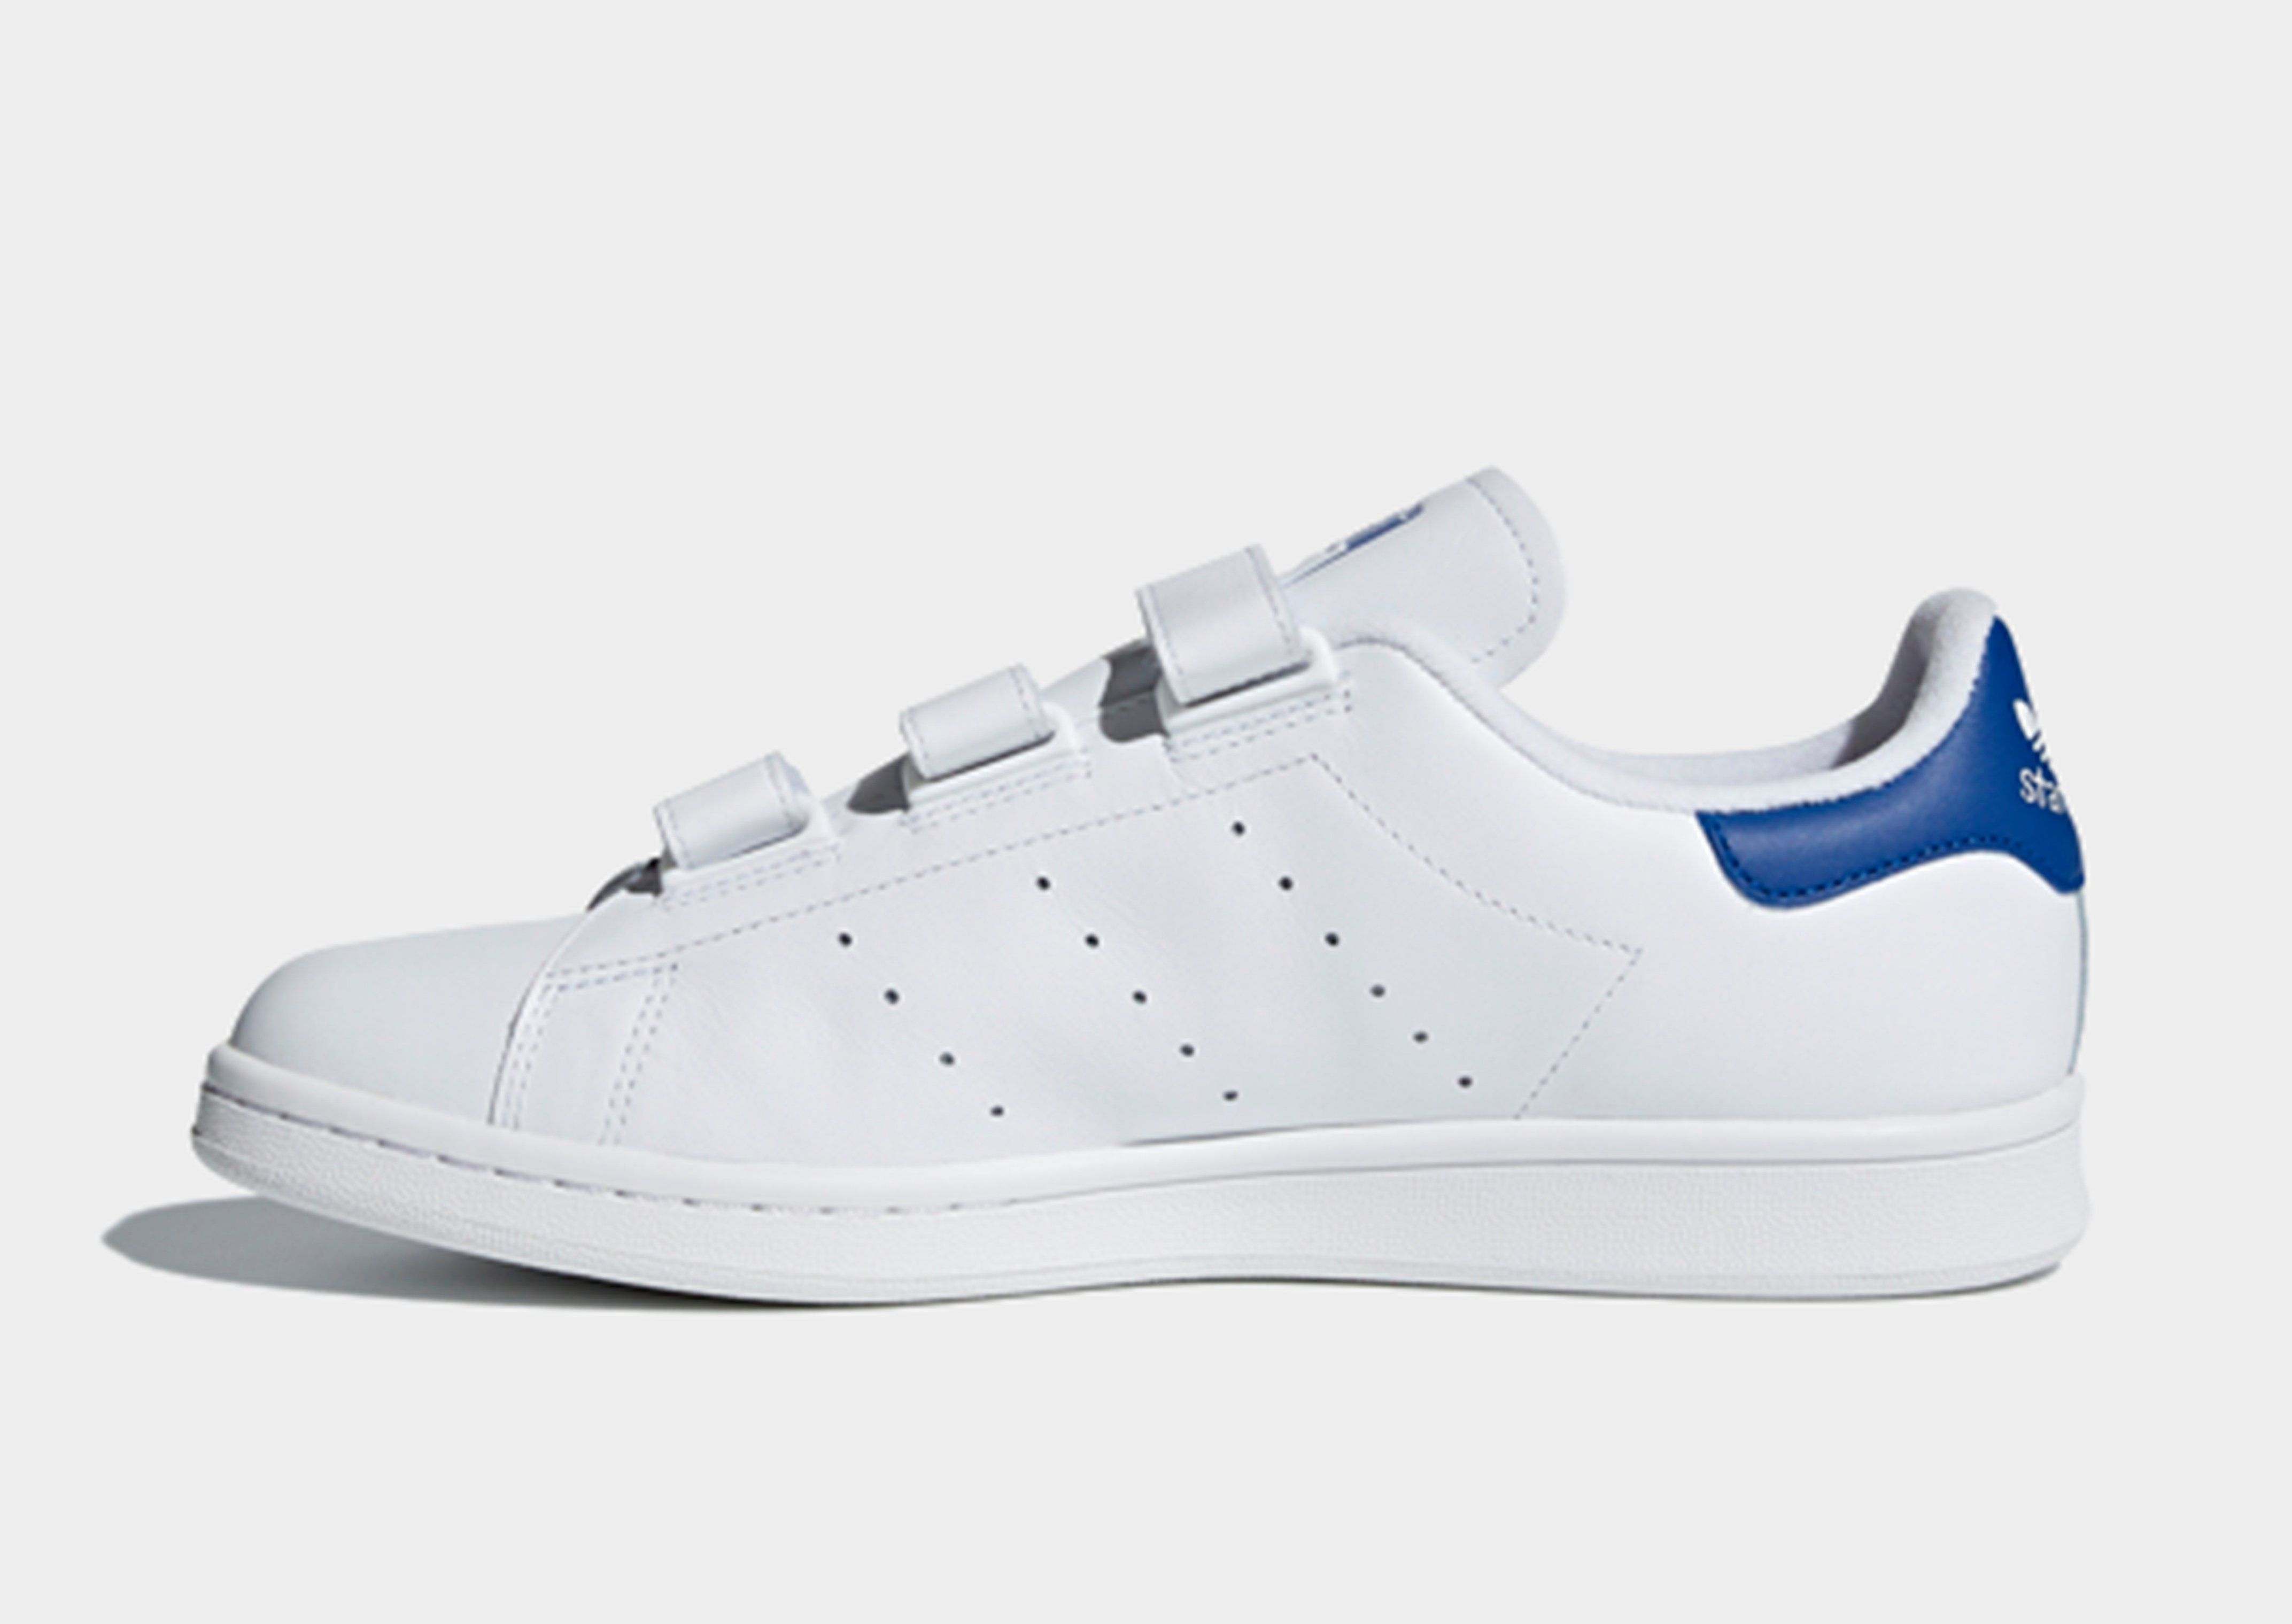 designer fashion 57574 28d95 ADIDAS Stan Smith Shoes  JD Sports